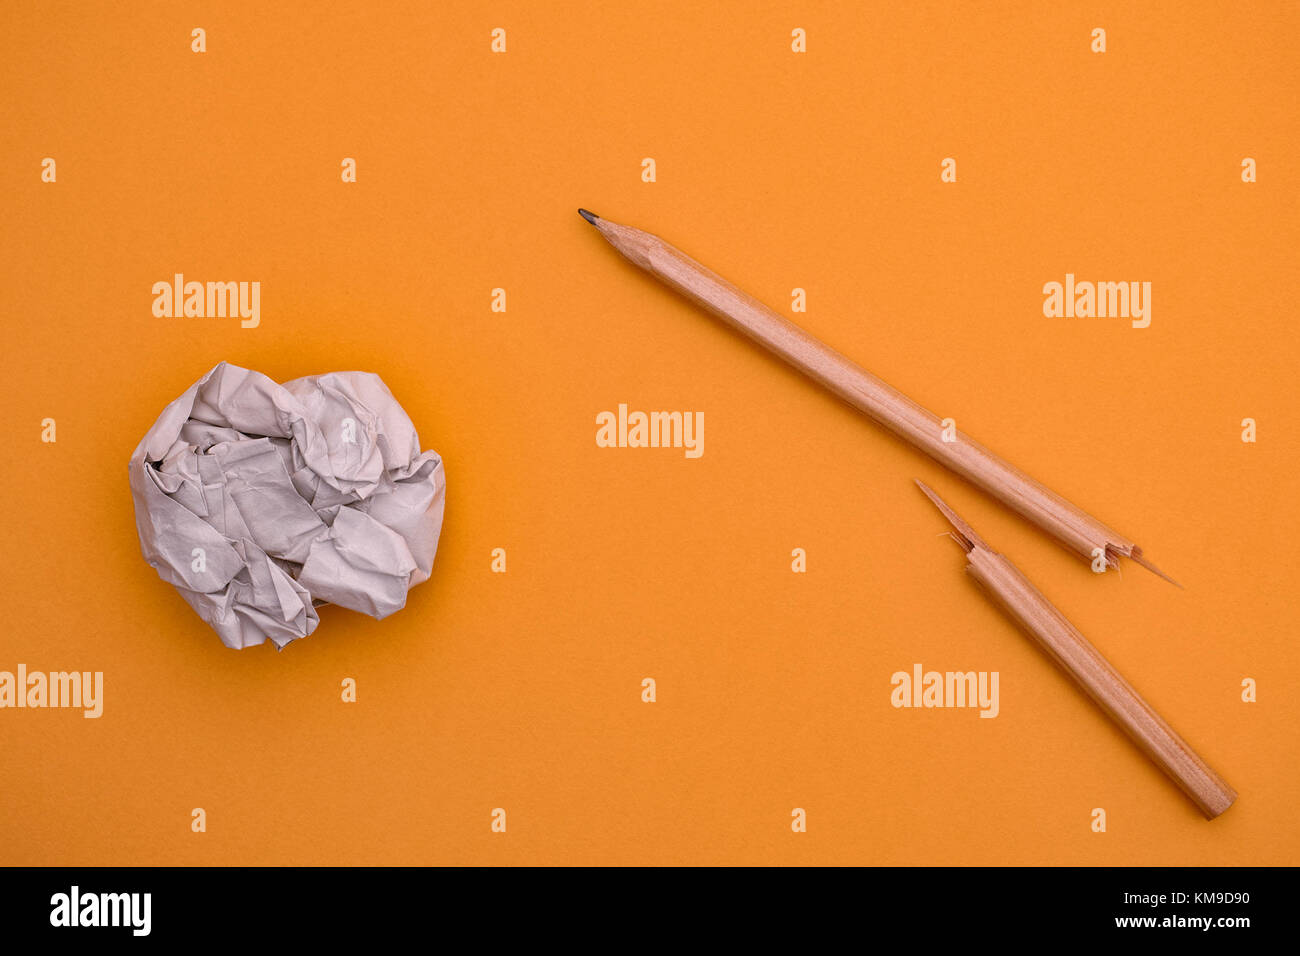 Broken pencil and crumpled paper ball on a yellow background. Close up. - Stock Image